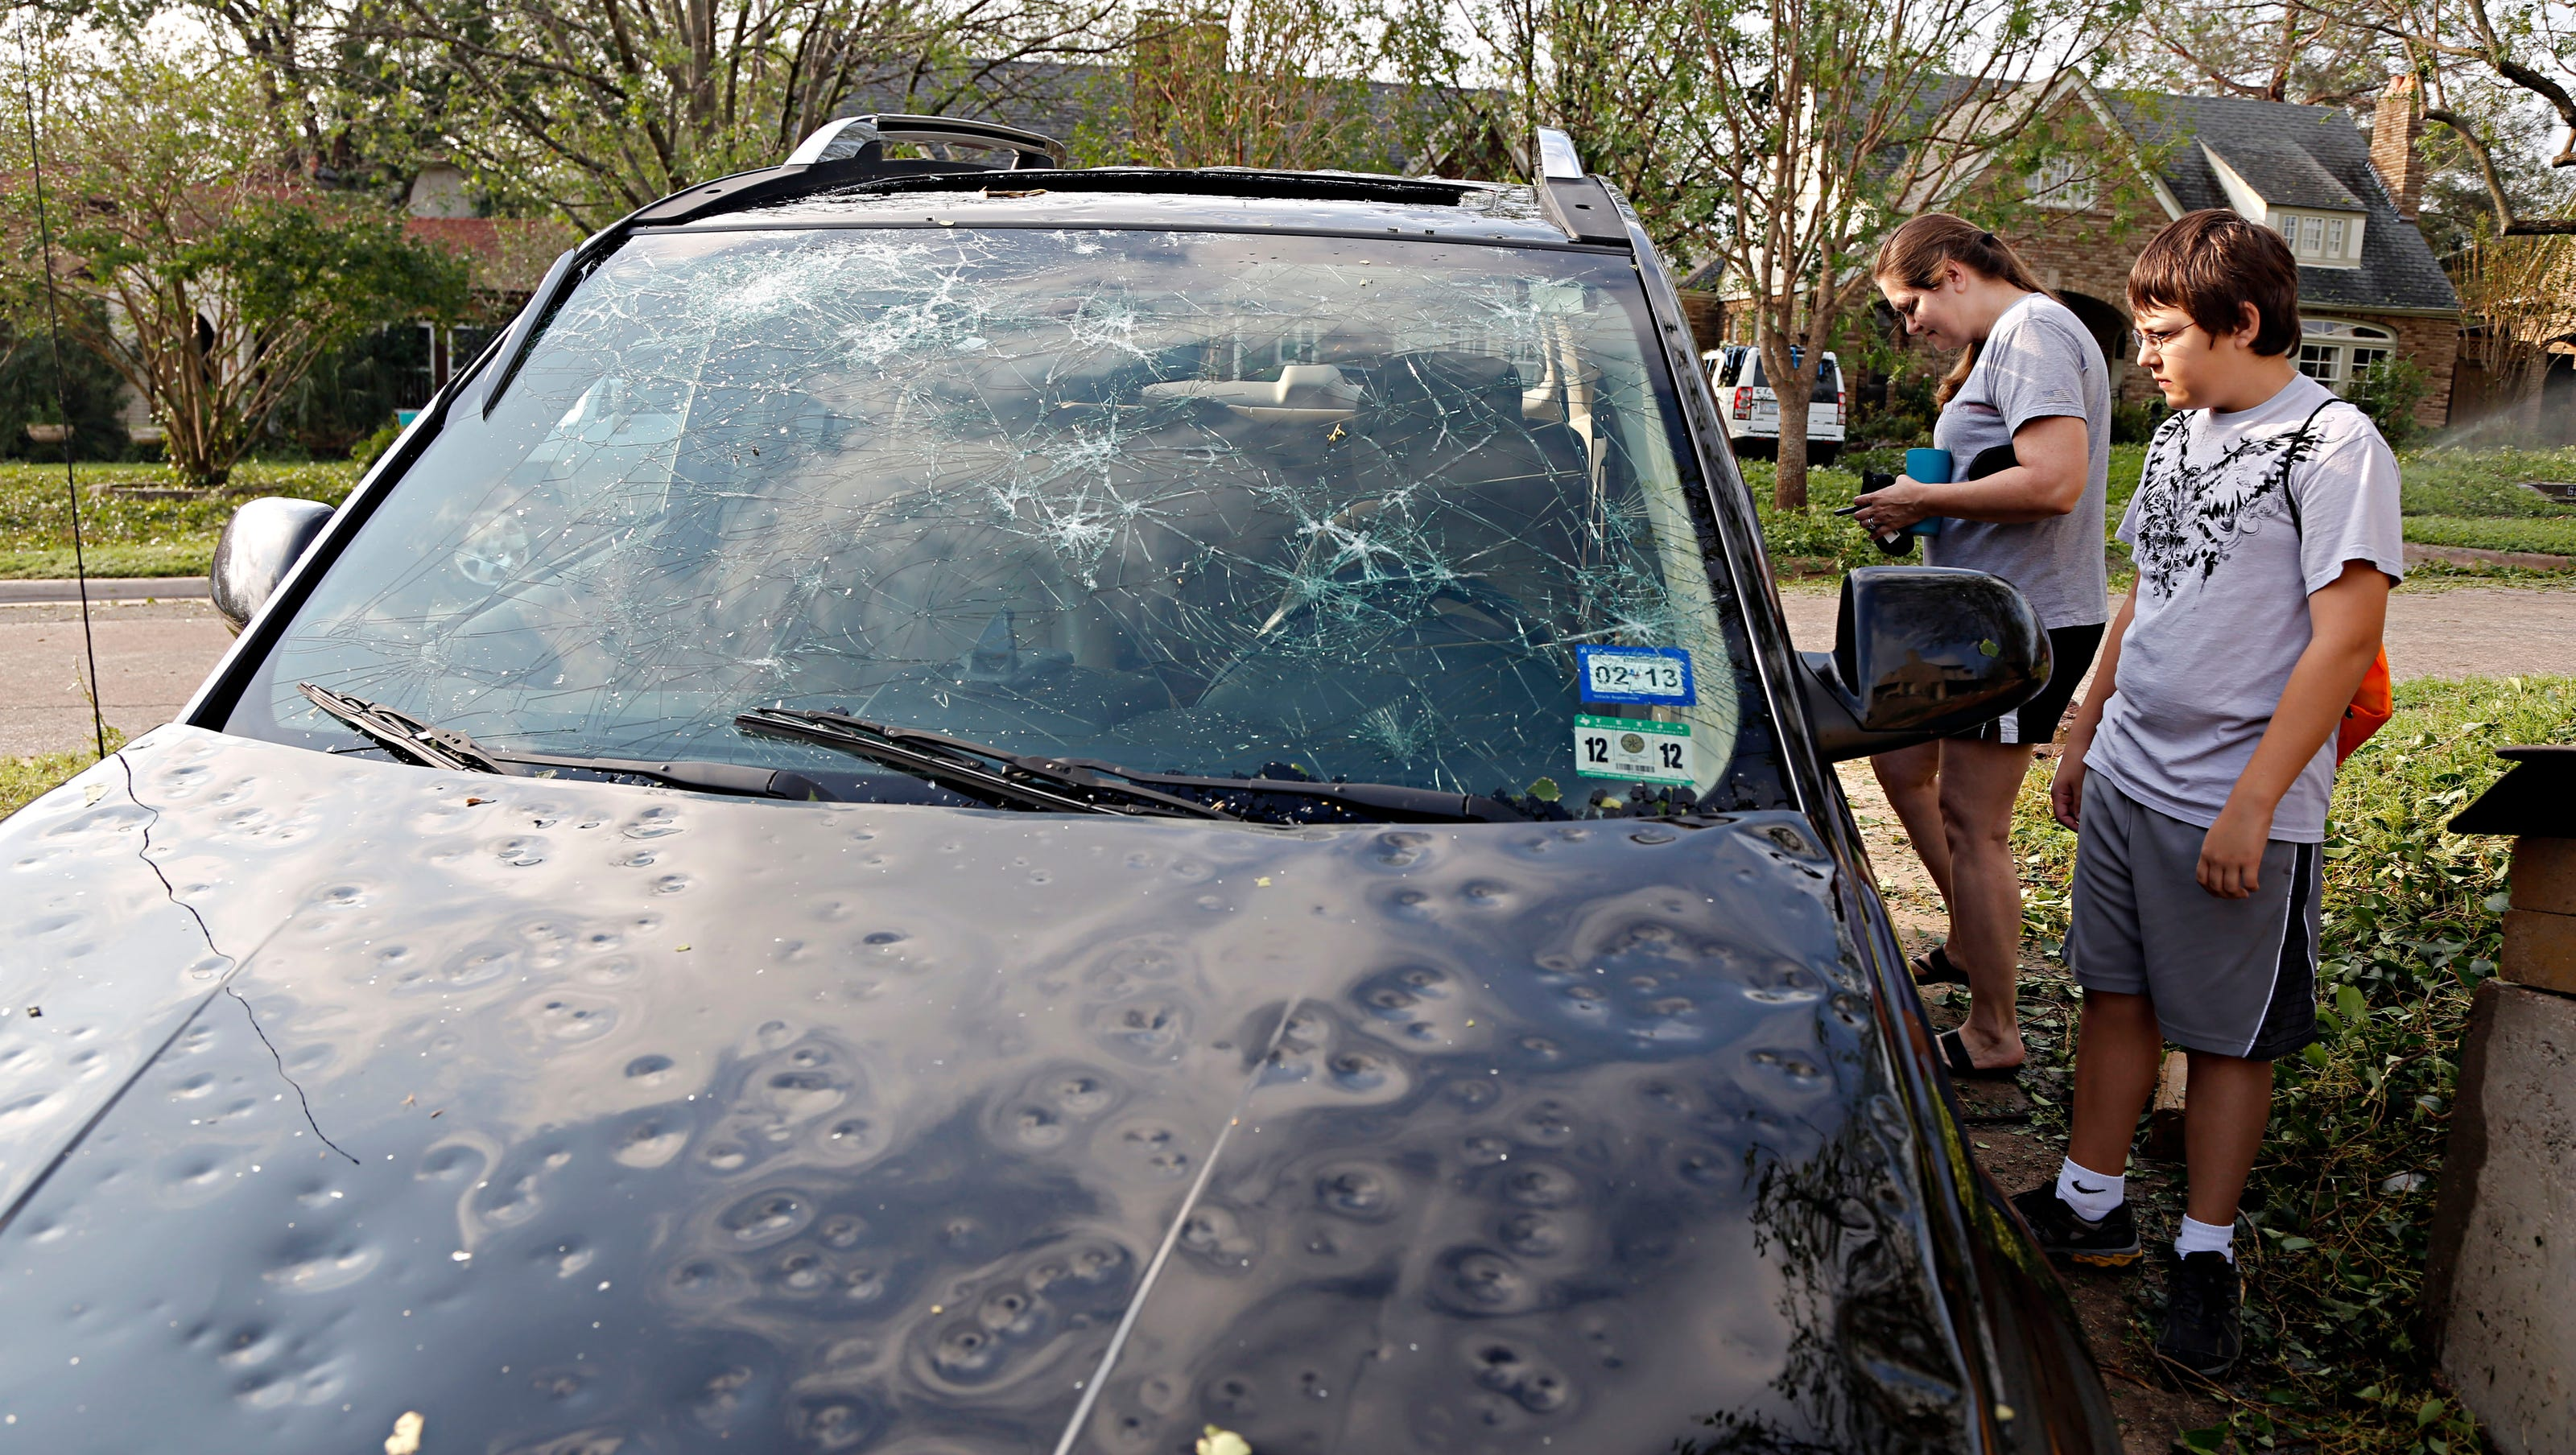 Buying A Car With Hail Damage >> Hail-damaged cars can be a good deal, but be wary